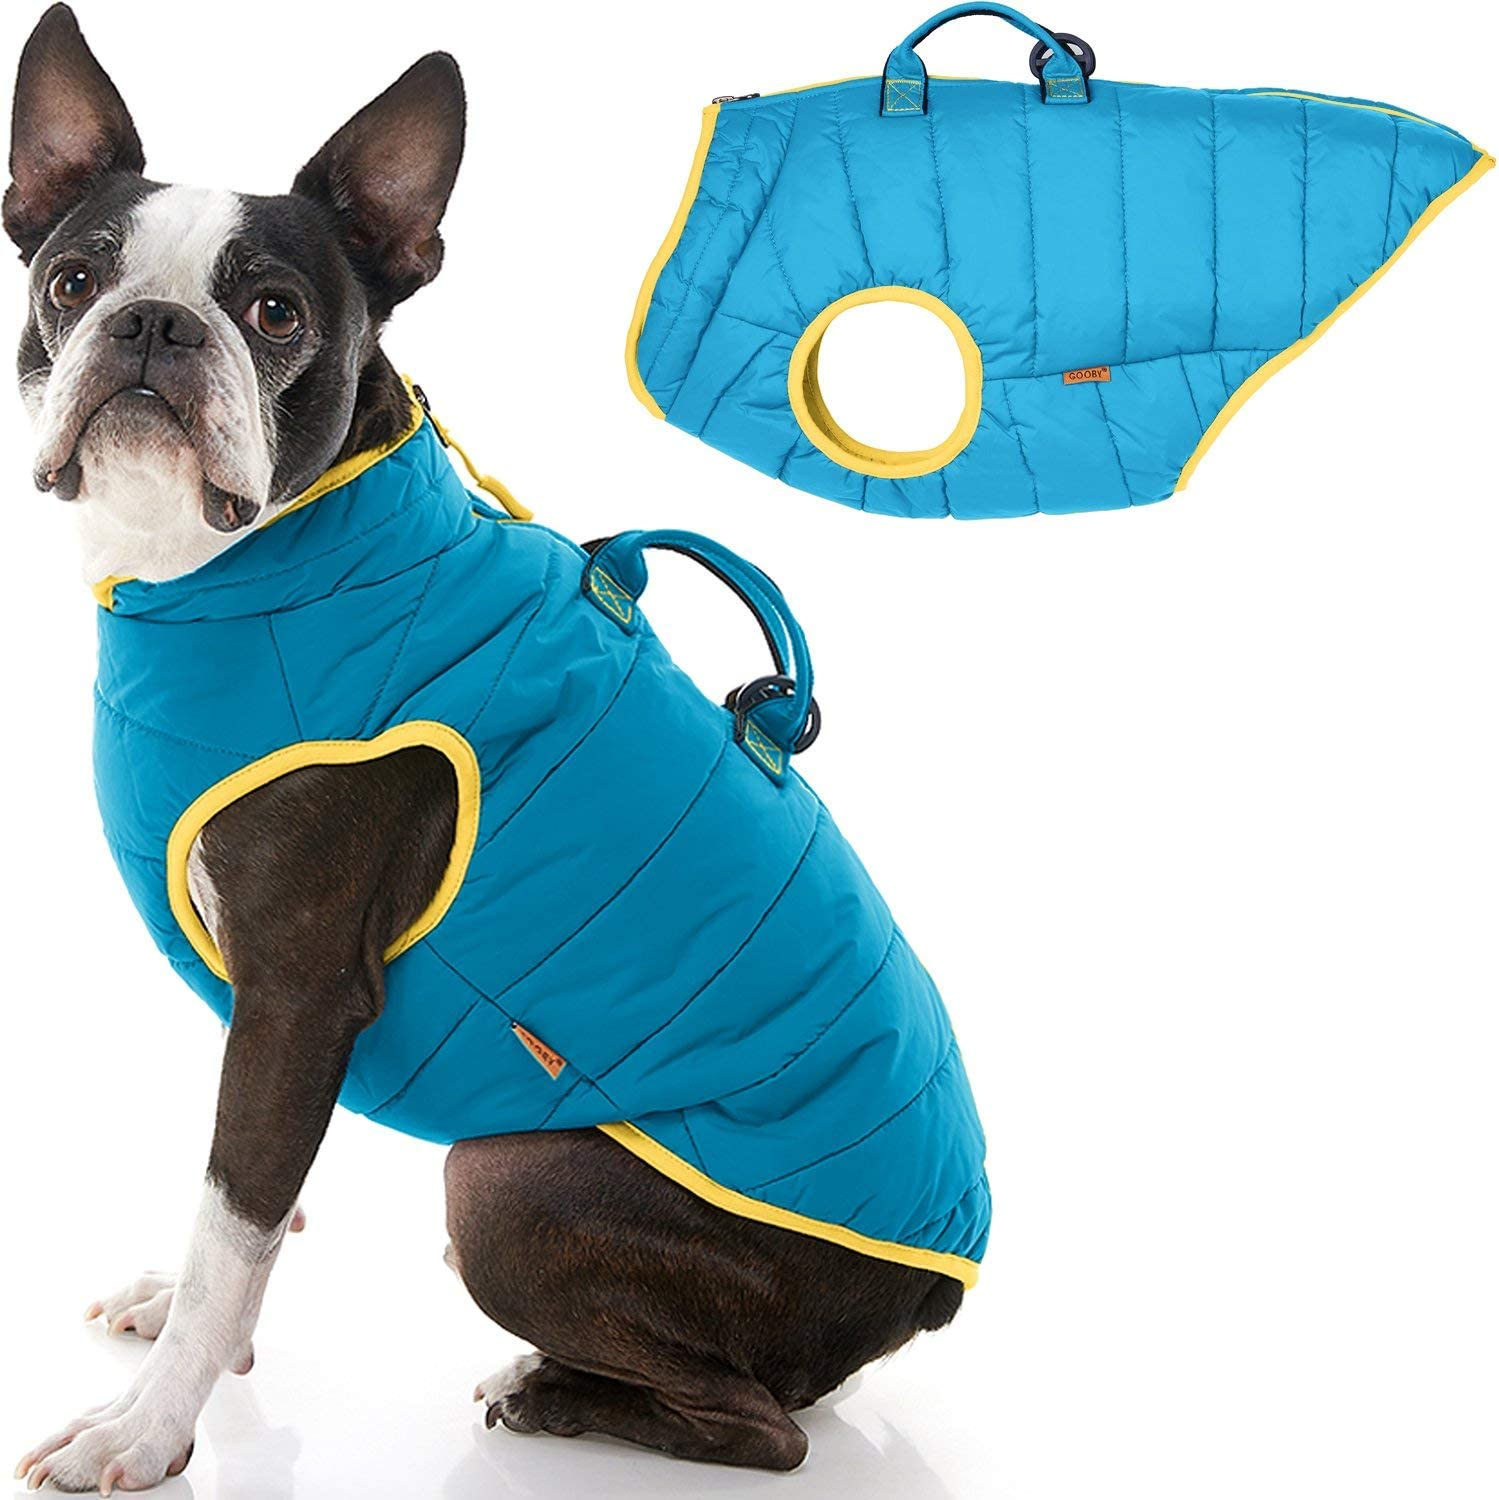 Gooby Padded Max 51% OFF Vest Lift Dog Jacket Limited price - Up with Coat Zip Warm Handle